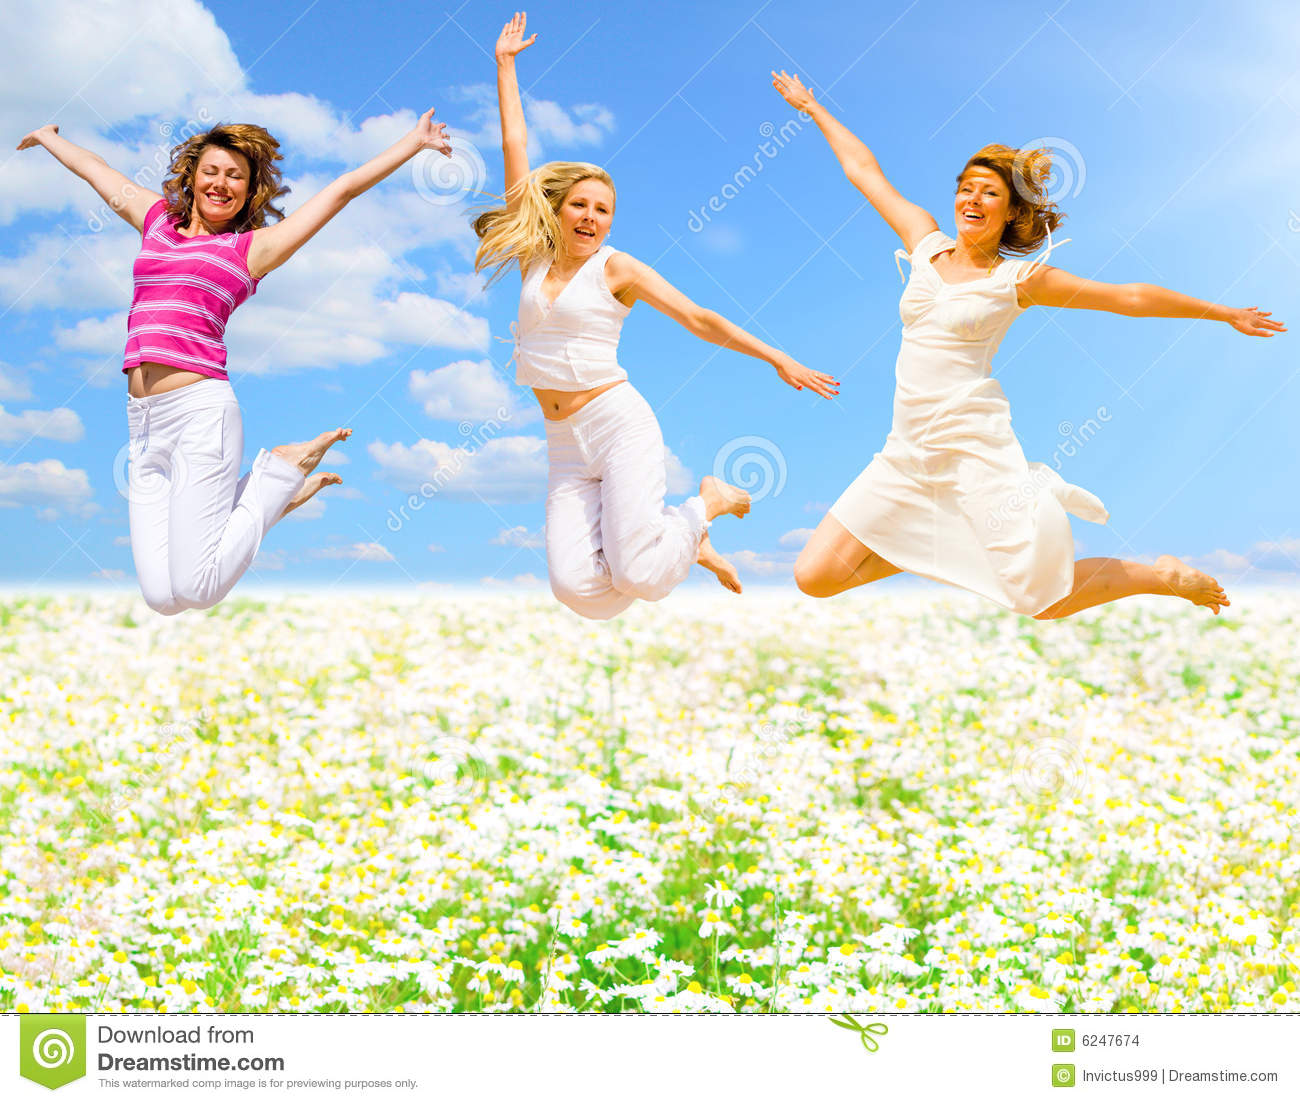 Jumping over flower field